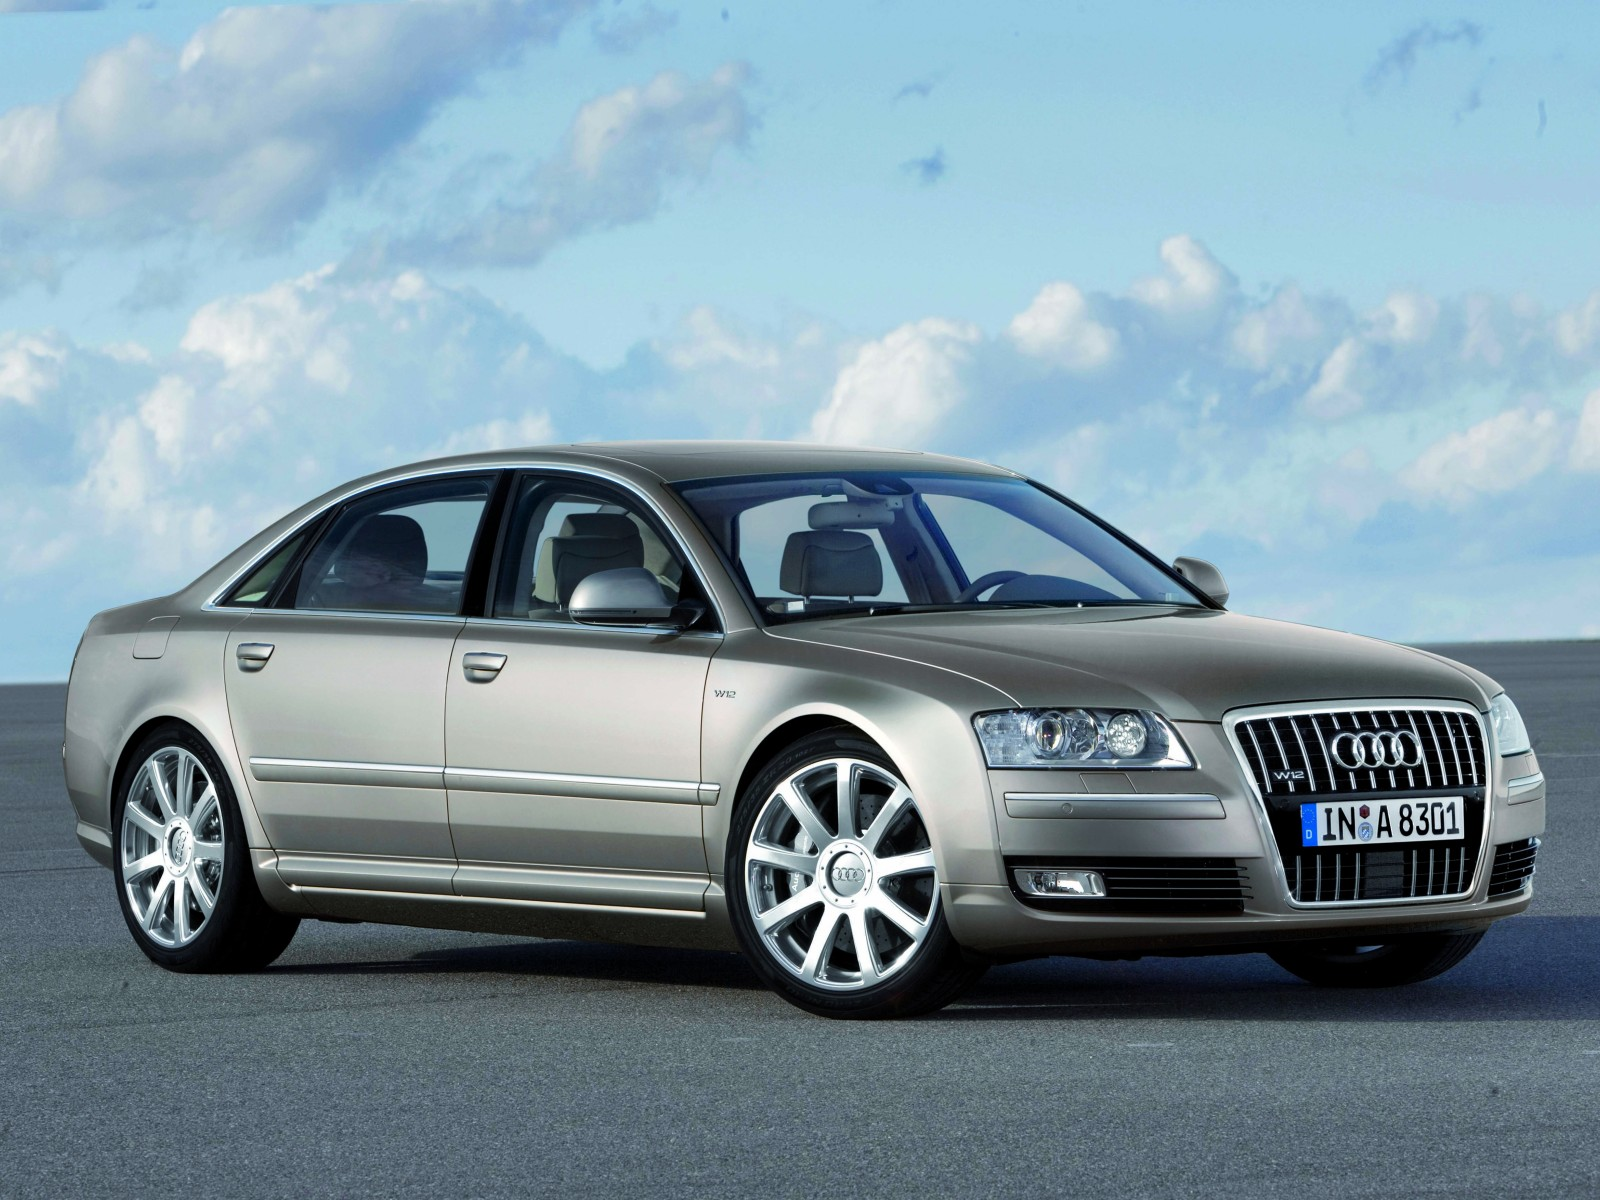 2008 audi a8 w12 quattro motor desktop. Black Bedroom Furniture Sets. Home Design Ideas